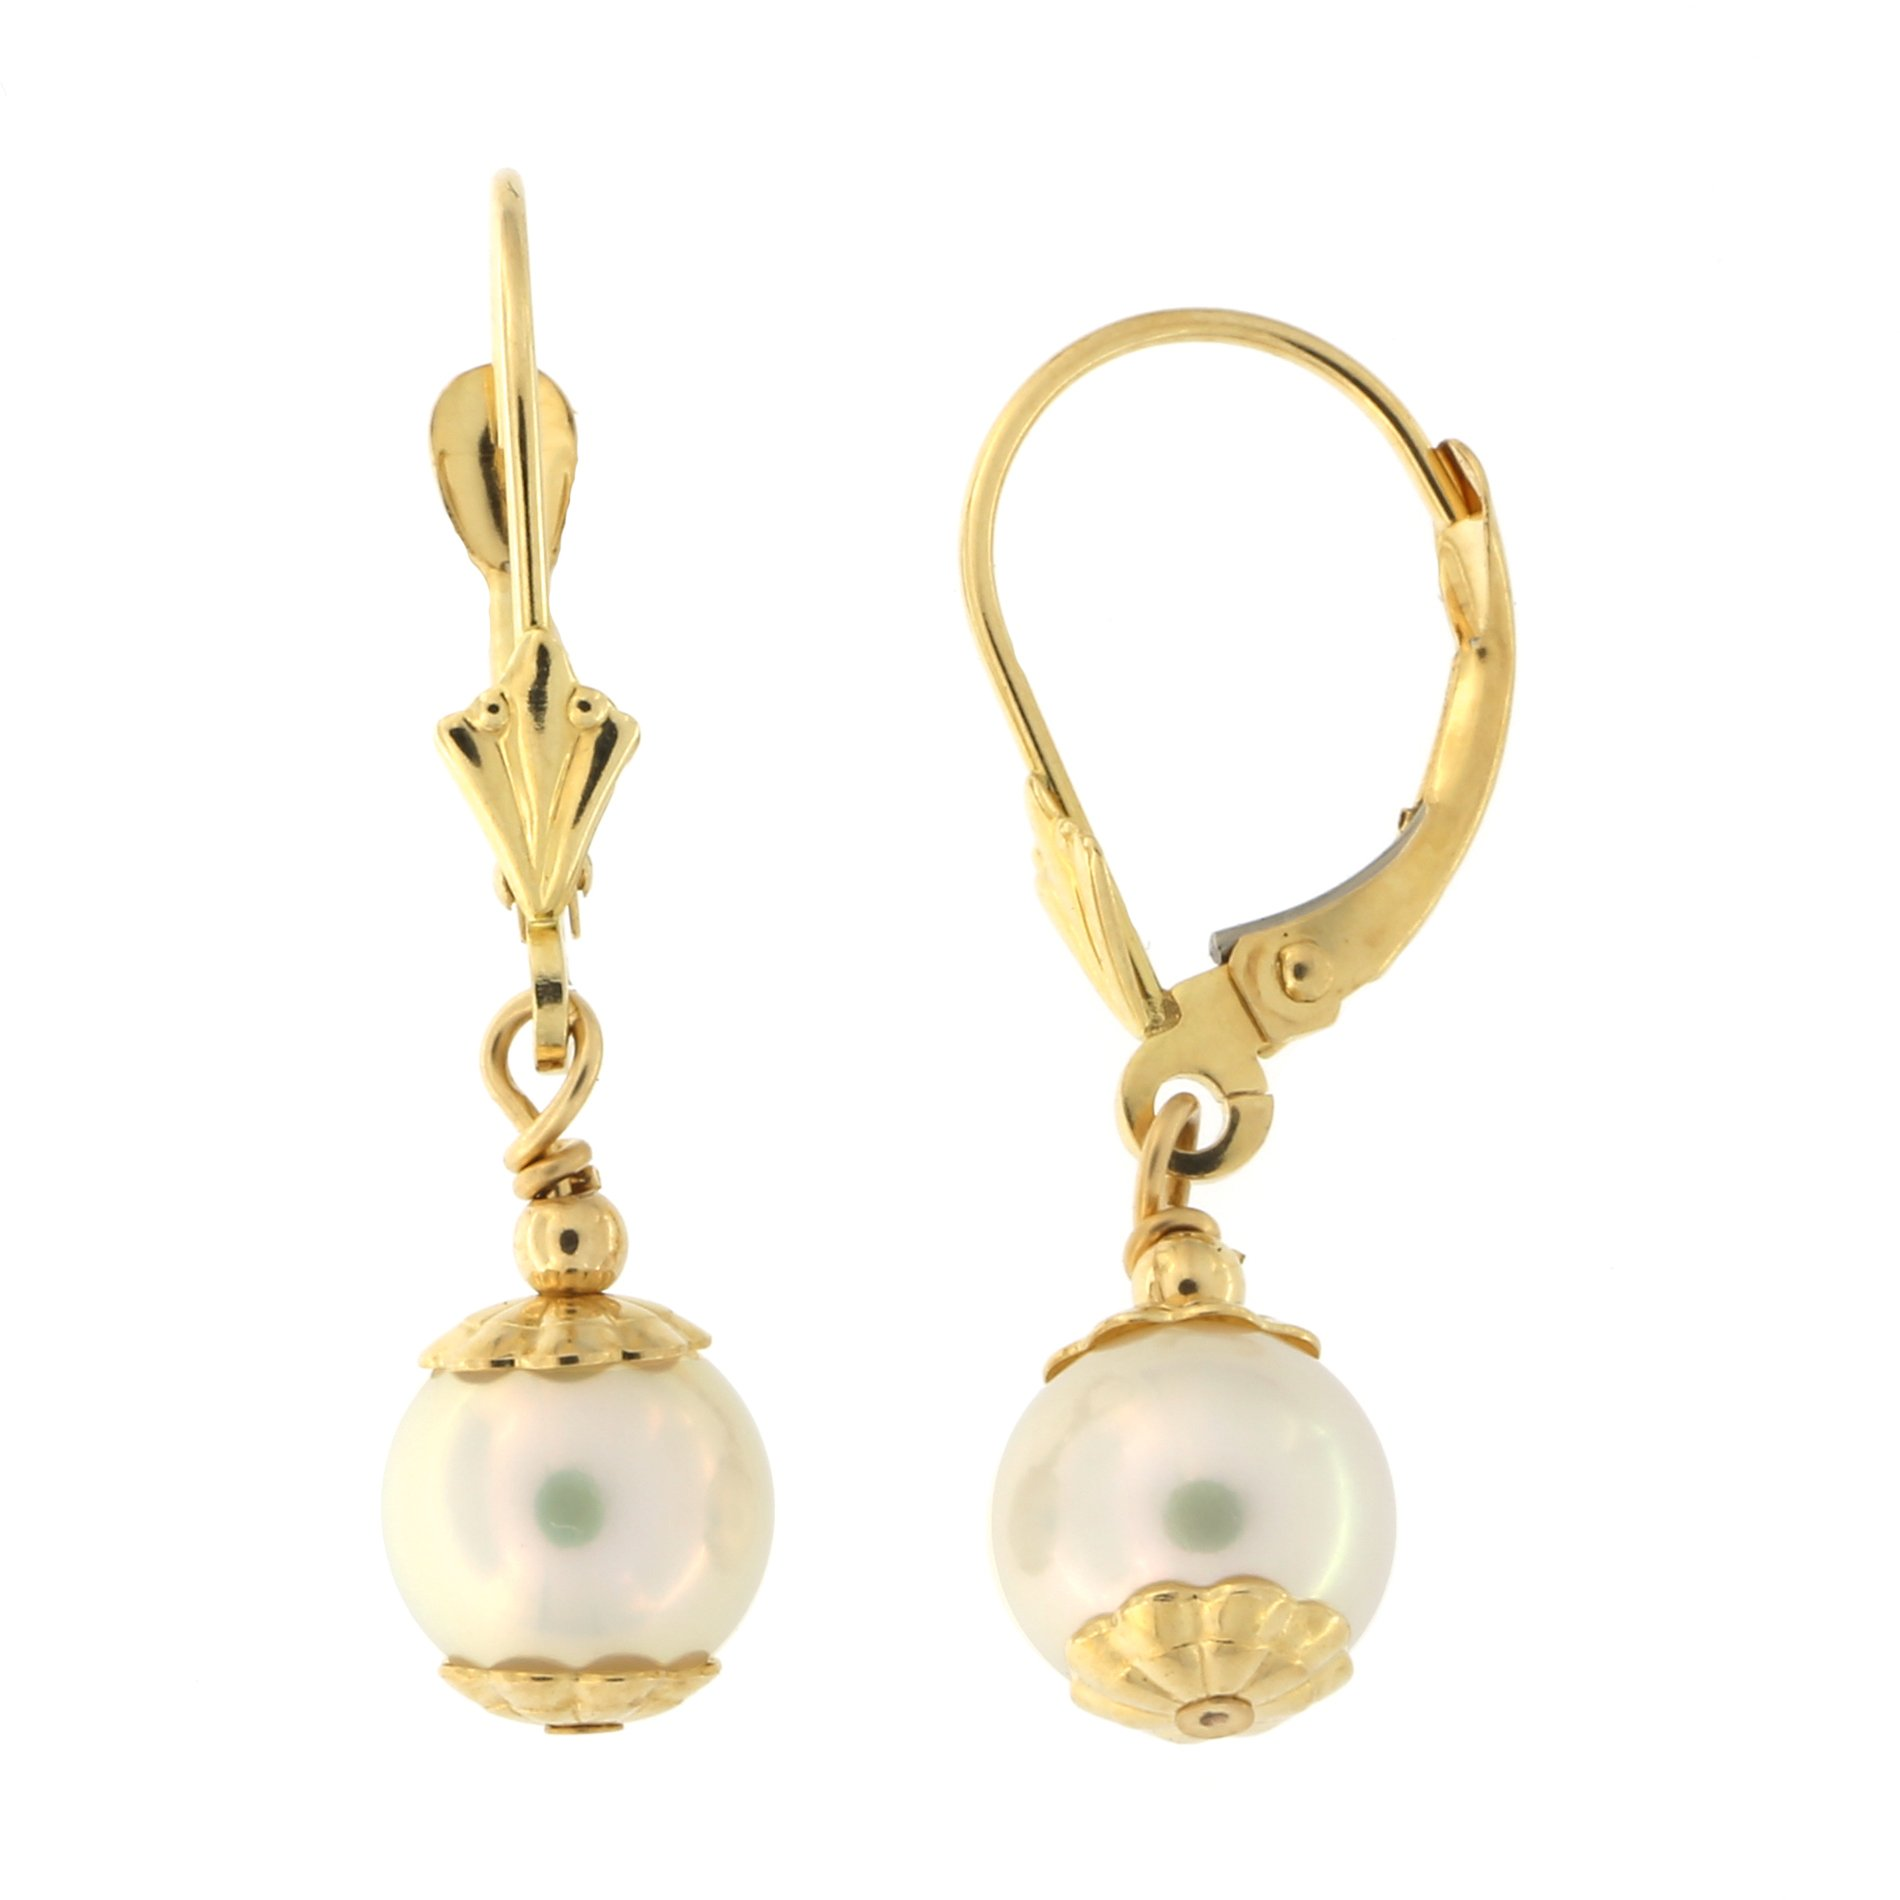 14k Yellow Gold 7mm Freshwater Cultured Pearl Leverback Dangle Earrings with Floral Caps